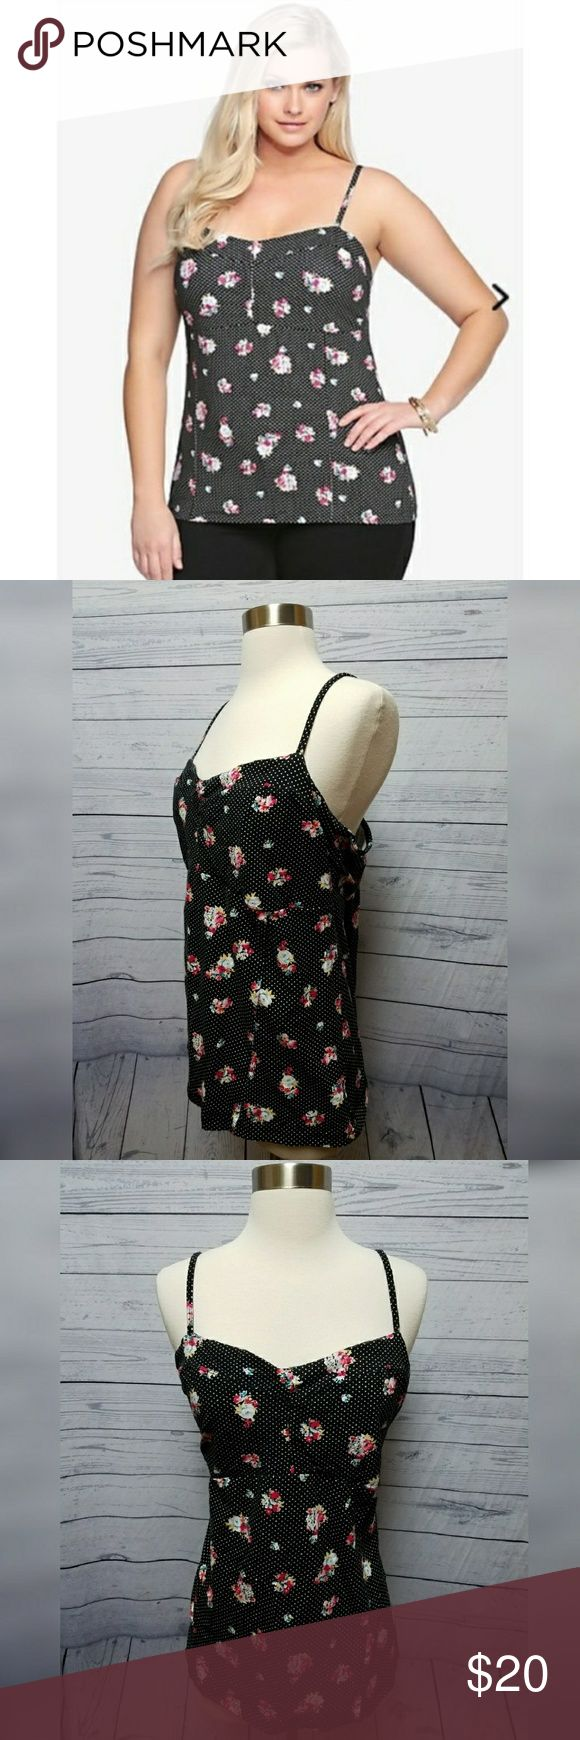 Torrid polka dot floral bustier cami Torrid polka dot floral bustier cami tank top. Women's plus size 3. Excellent used condition. Top is very stretchy. torrid Tops Tank Tops